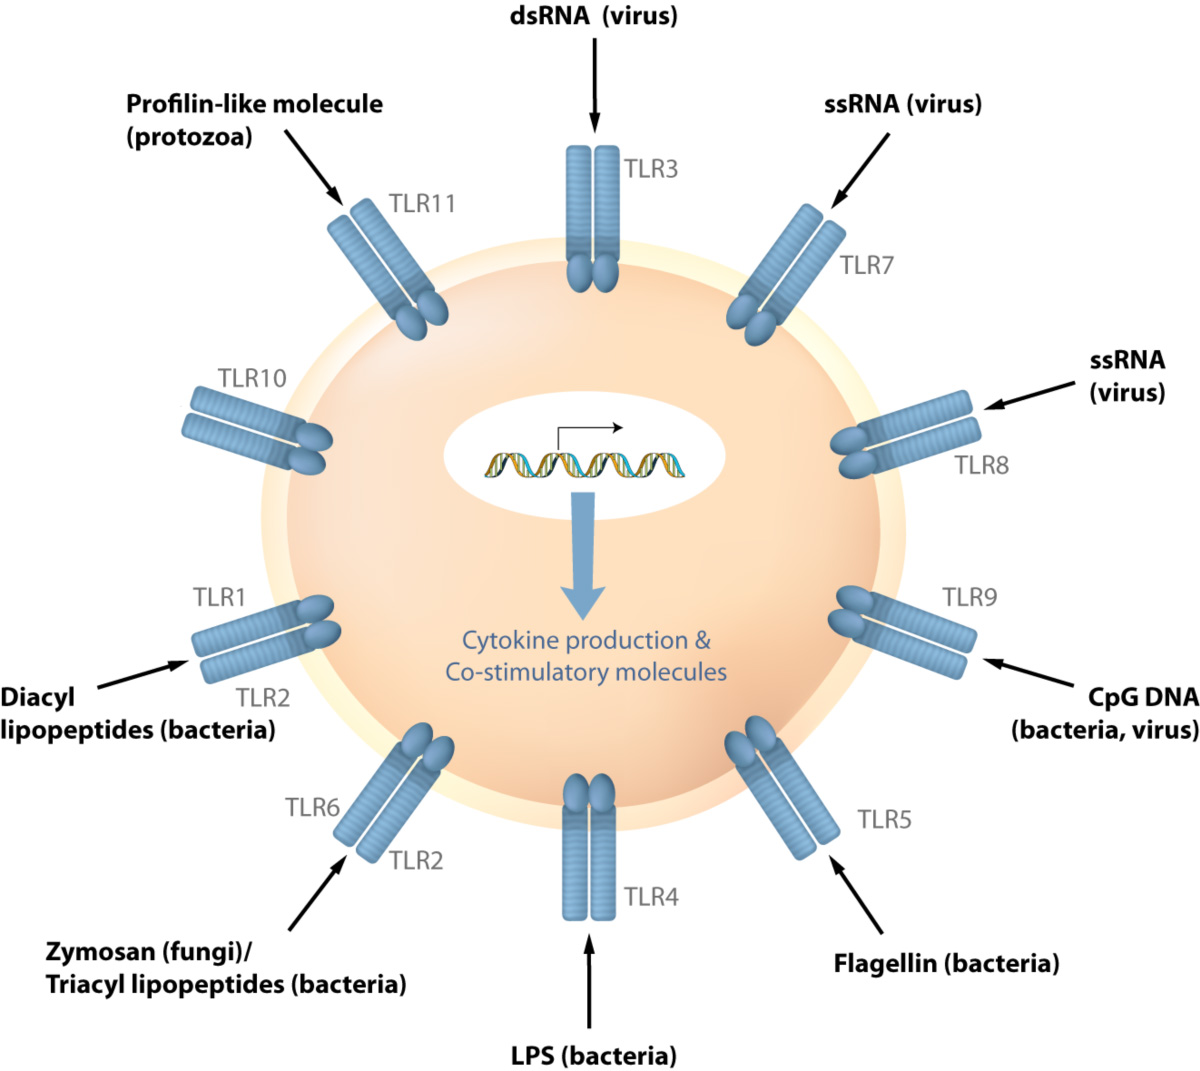 TLRs are receptor to detect pathogens such as virus or bacteria. Upon recognition of microbes the cascade of signaling is activated to induce various immune response genes.